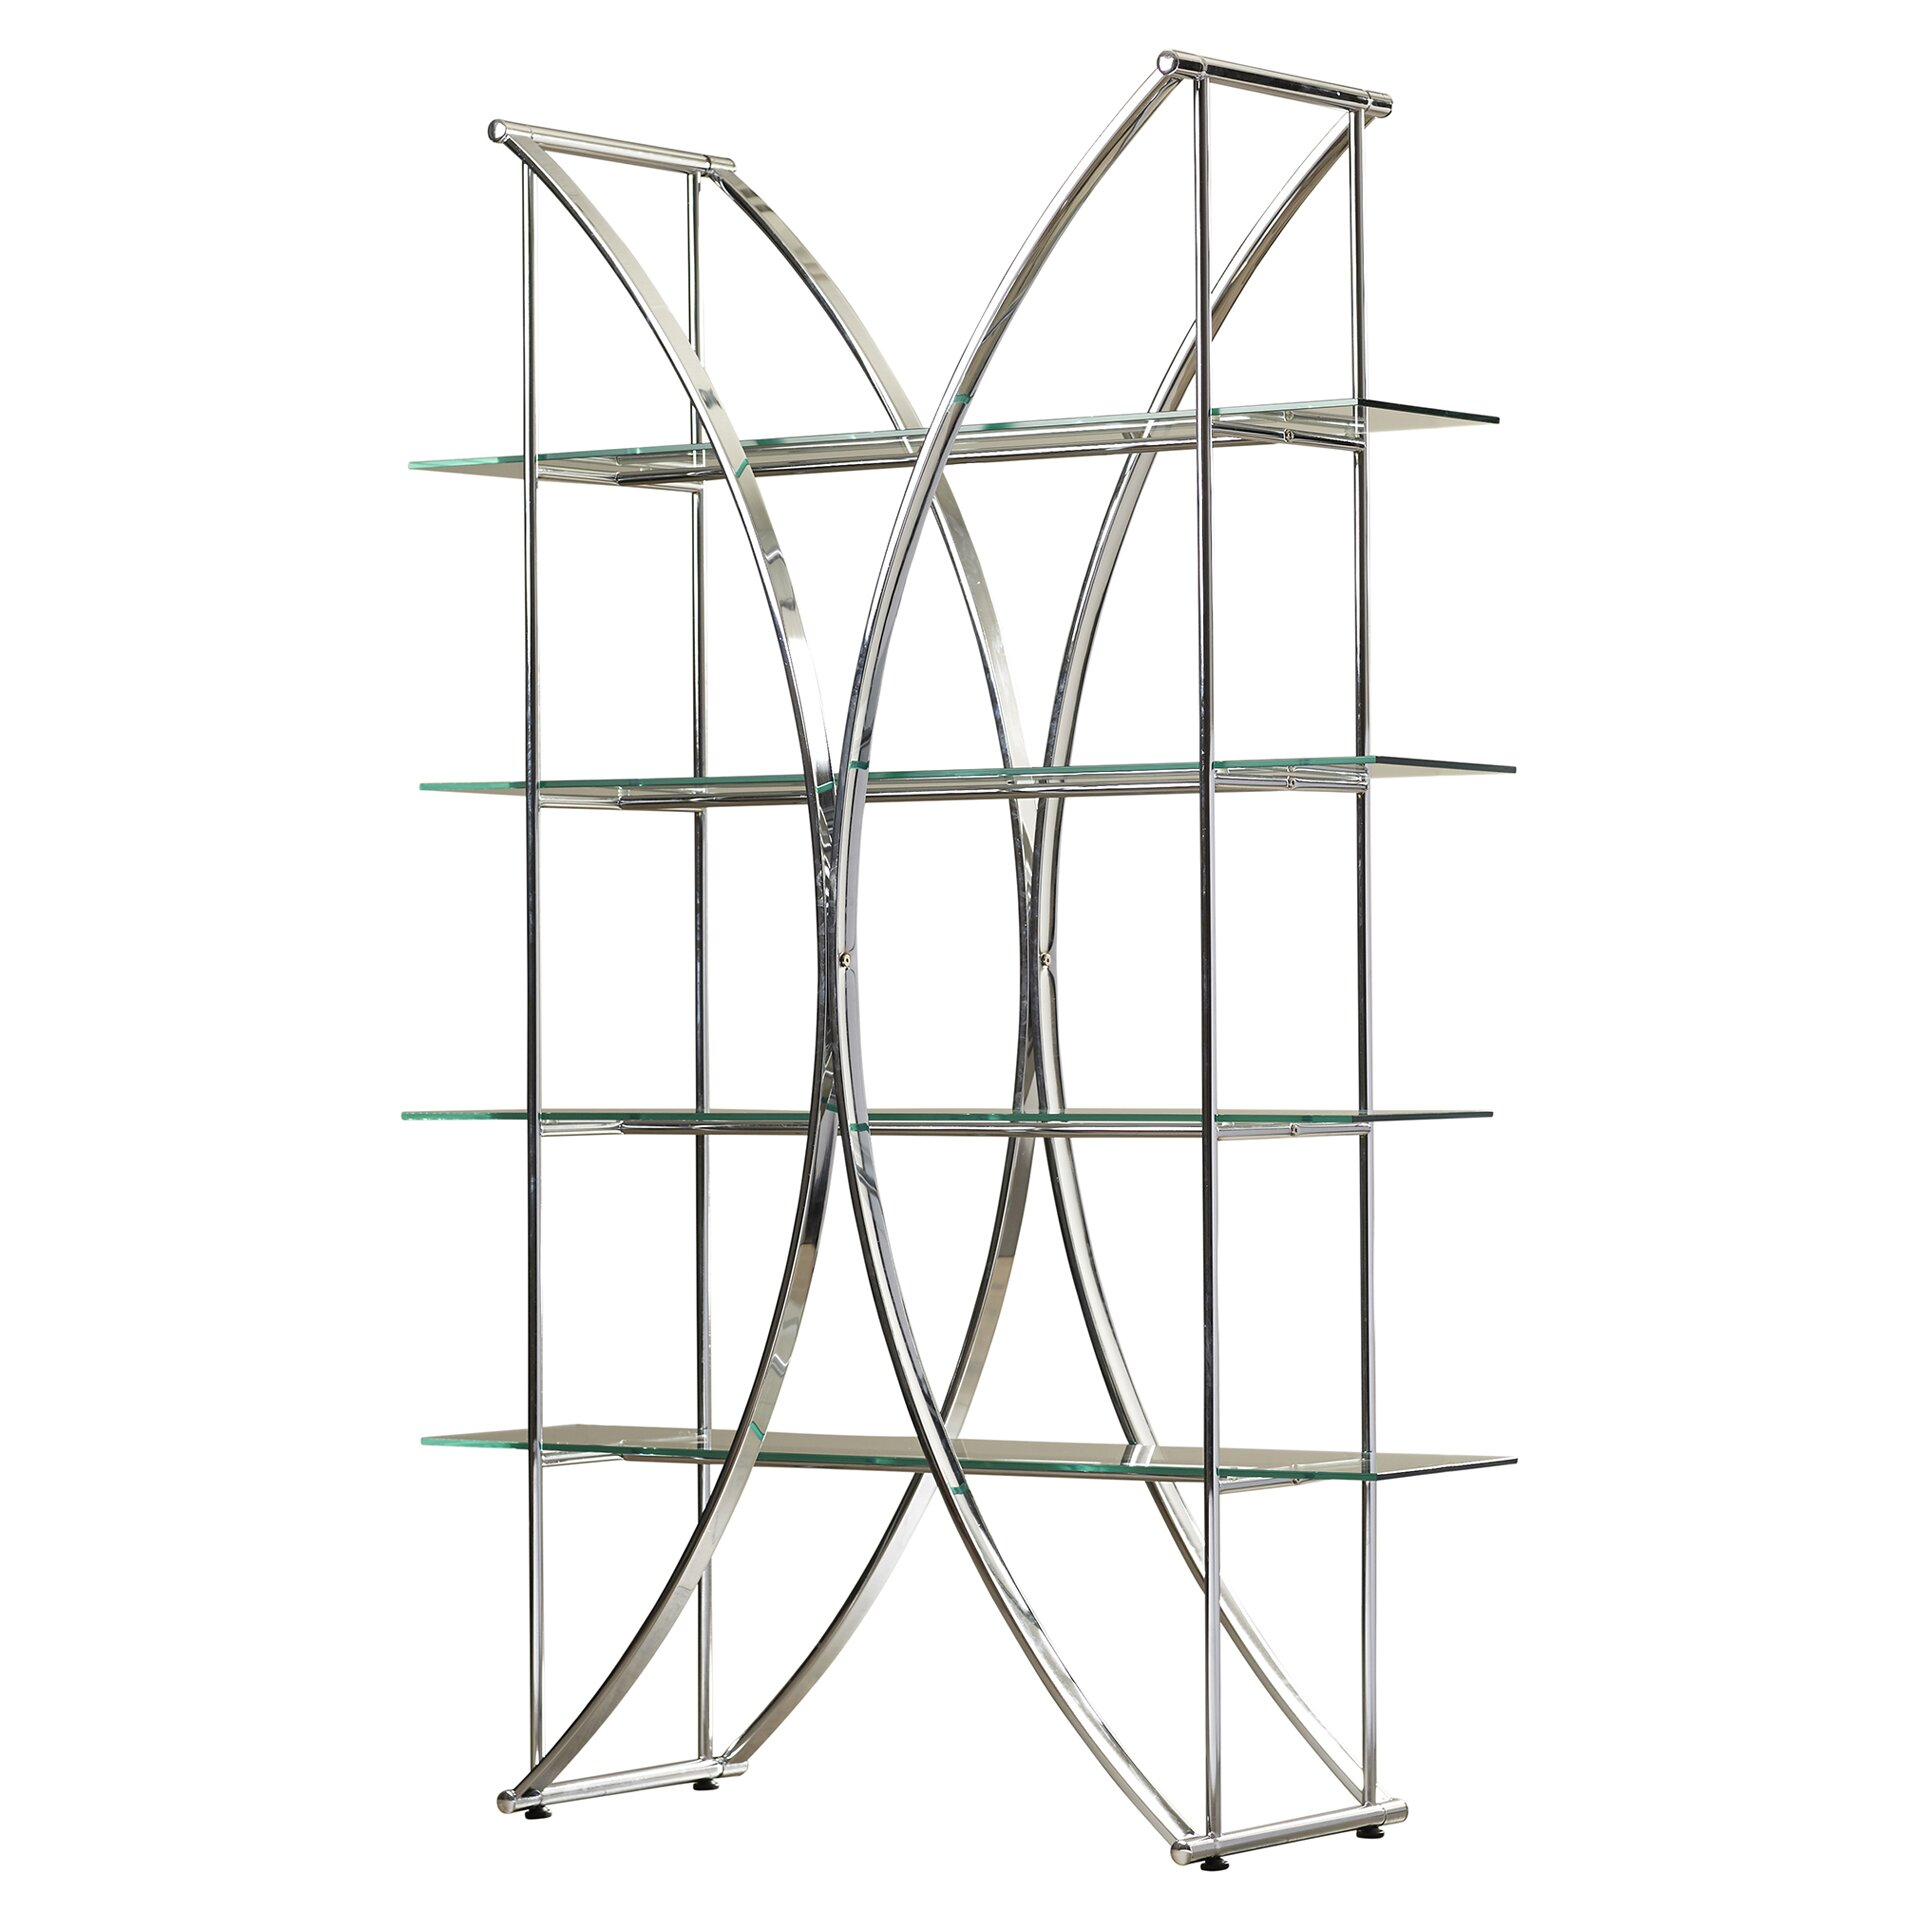 Door Details At Sliding Glass And together with 152345089823 likewise MVPower Metal Entryway Storage Bench With Coat Rack Corner Hallway Hat Shoe Coat Rack Stand 18 Hooks White Ap B01A8BEGGO besides Alluring Window Valances Cornices further 87504565. on patio shelf